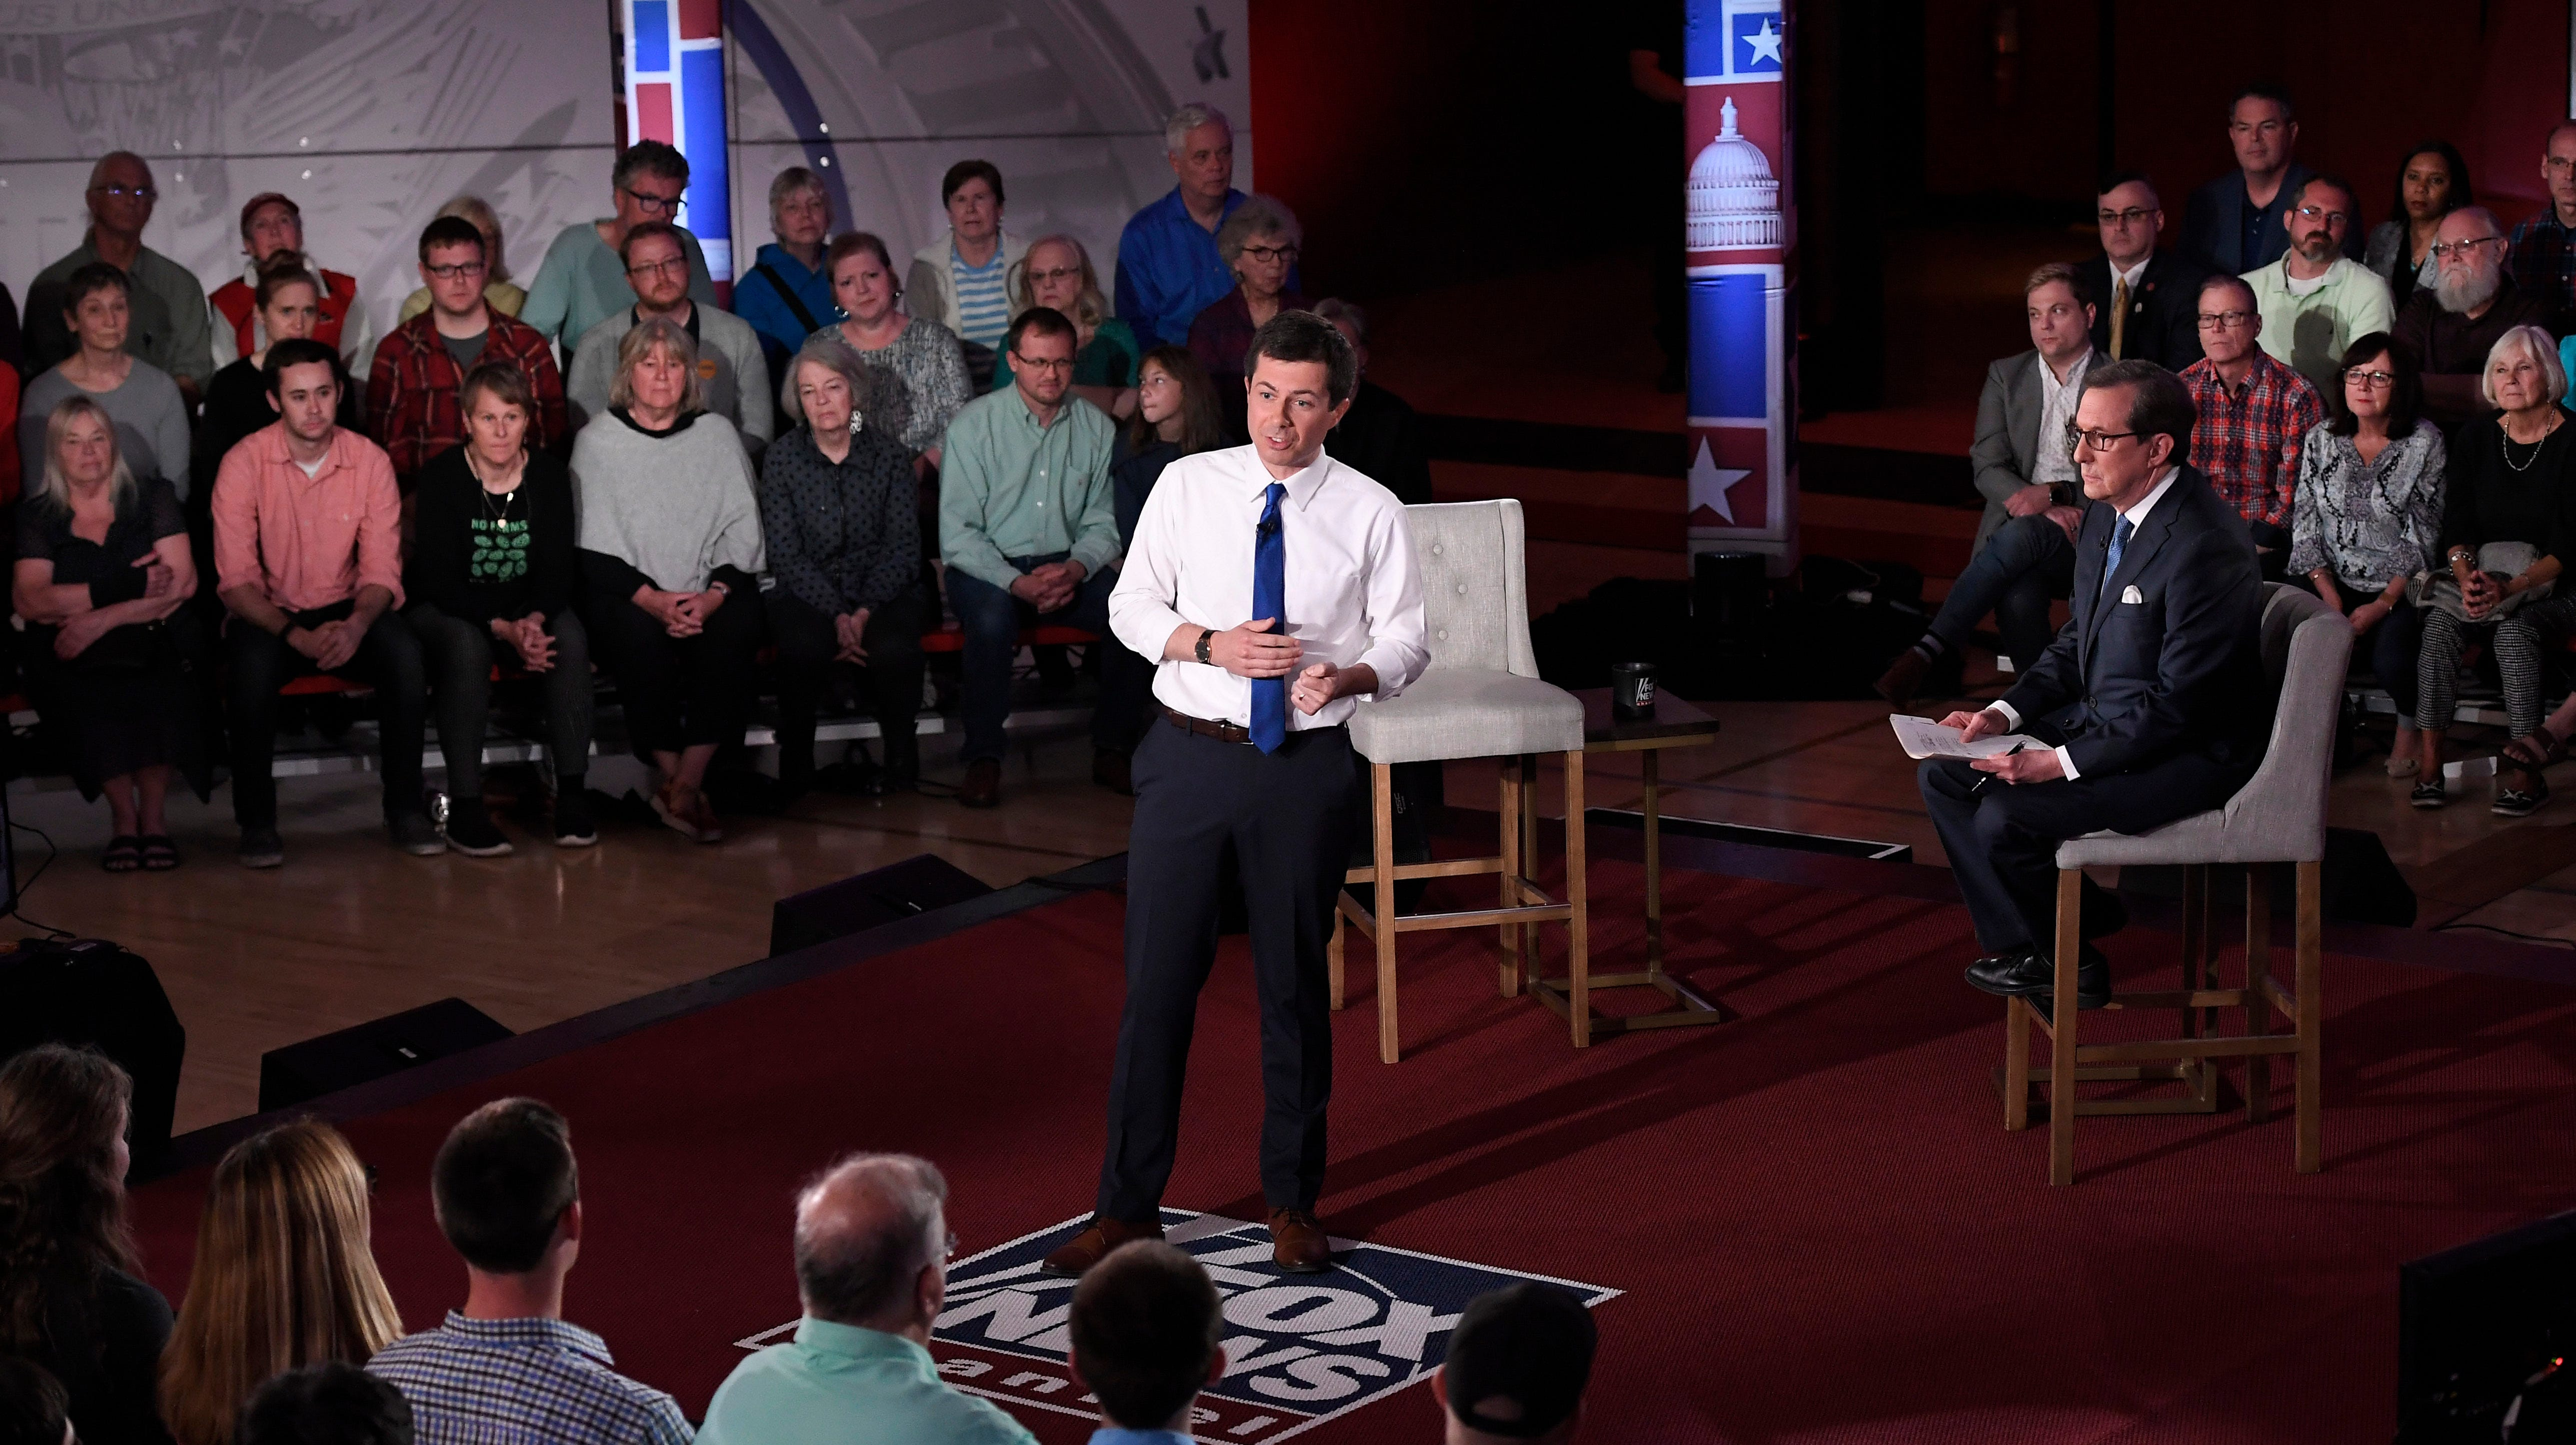 Democratic presidential candidate South Bend, Ind., Mayor Pete Buttigieg, center, answers a question during a FOX News Channel Town Hall moderated by Chris Wallace, center right, Sunday, May 19, 2019, in Claremont, N.H.